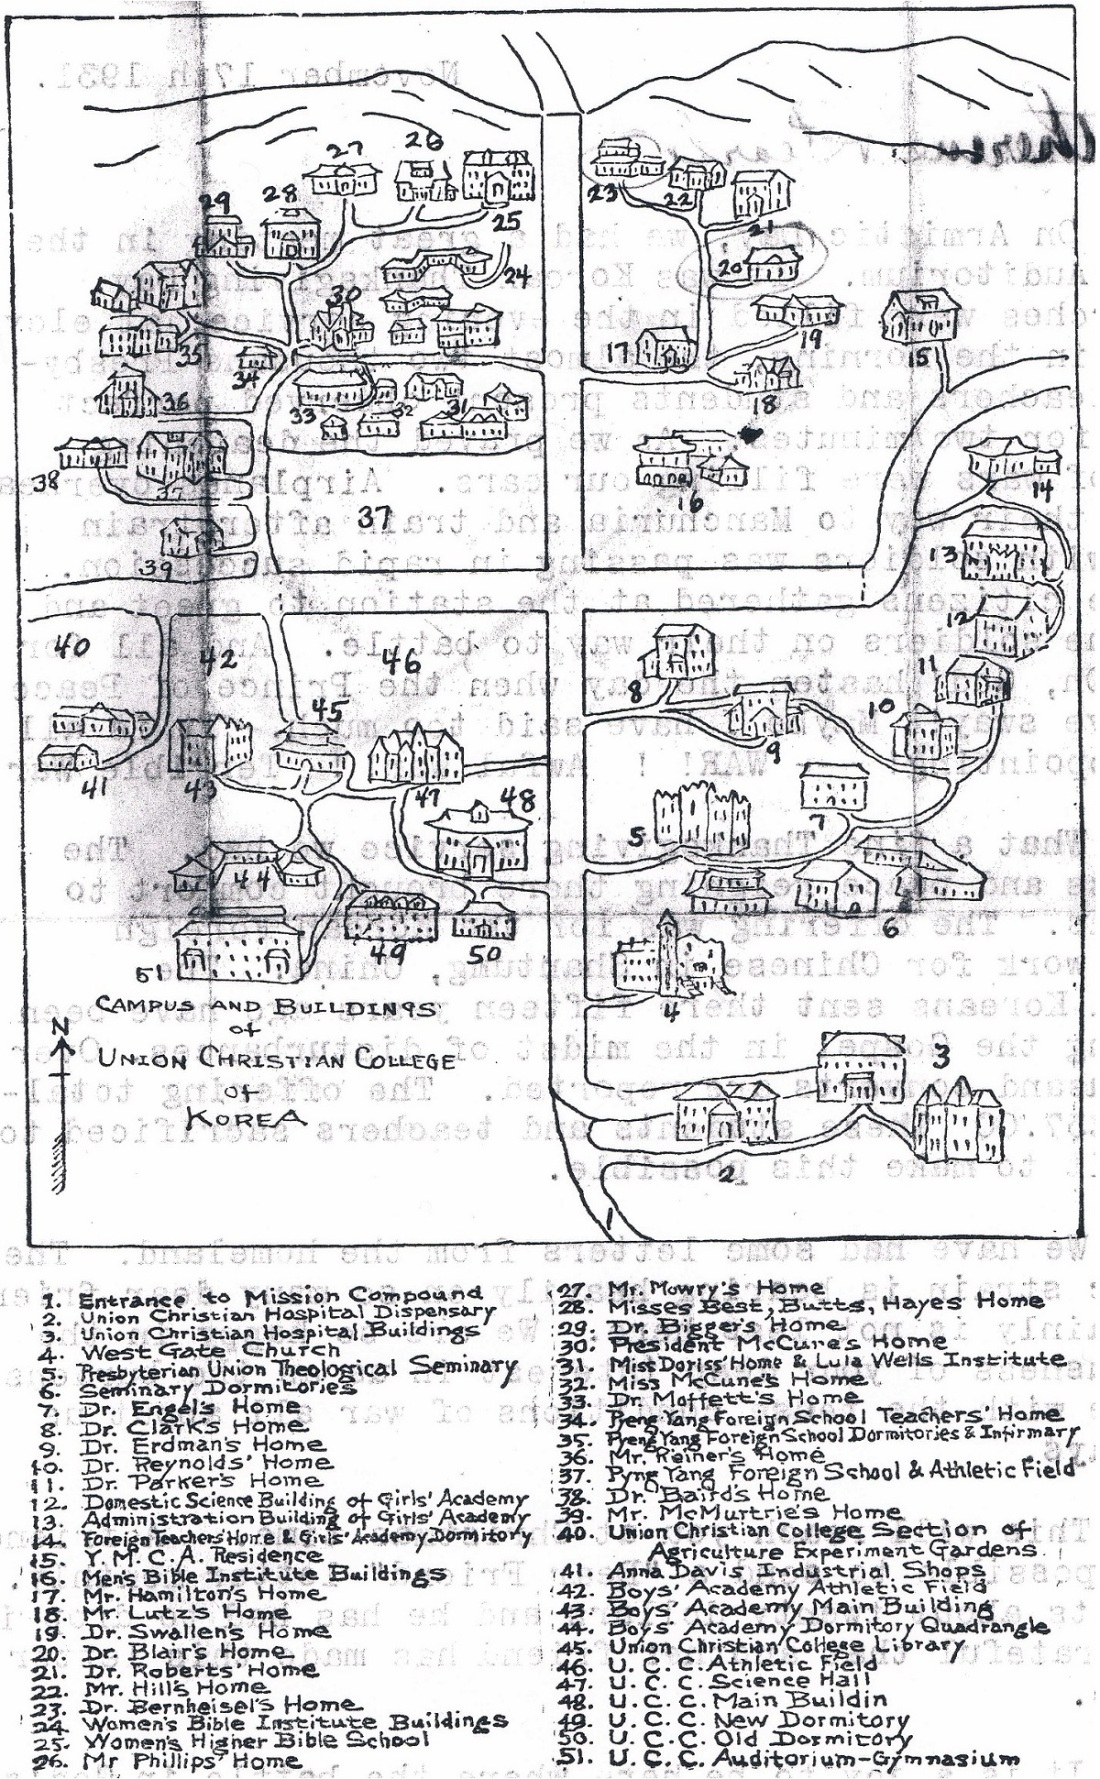 Union Christian College Map